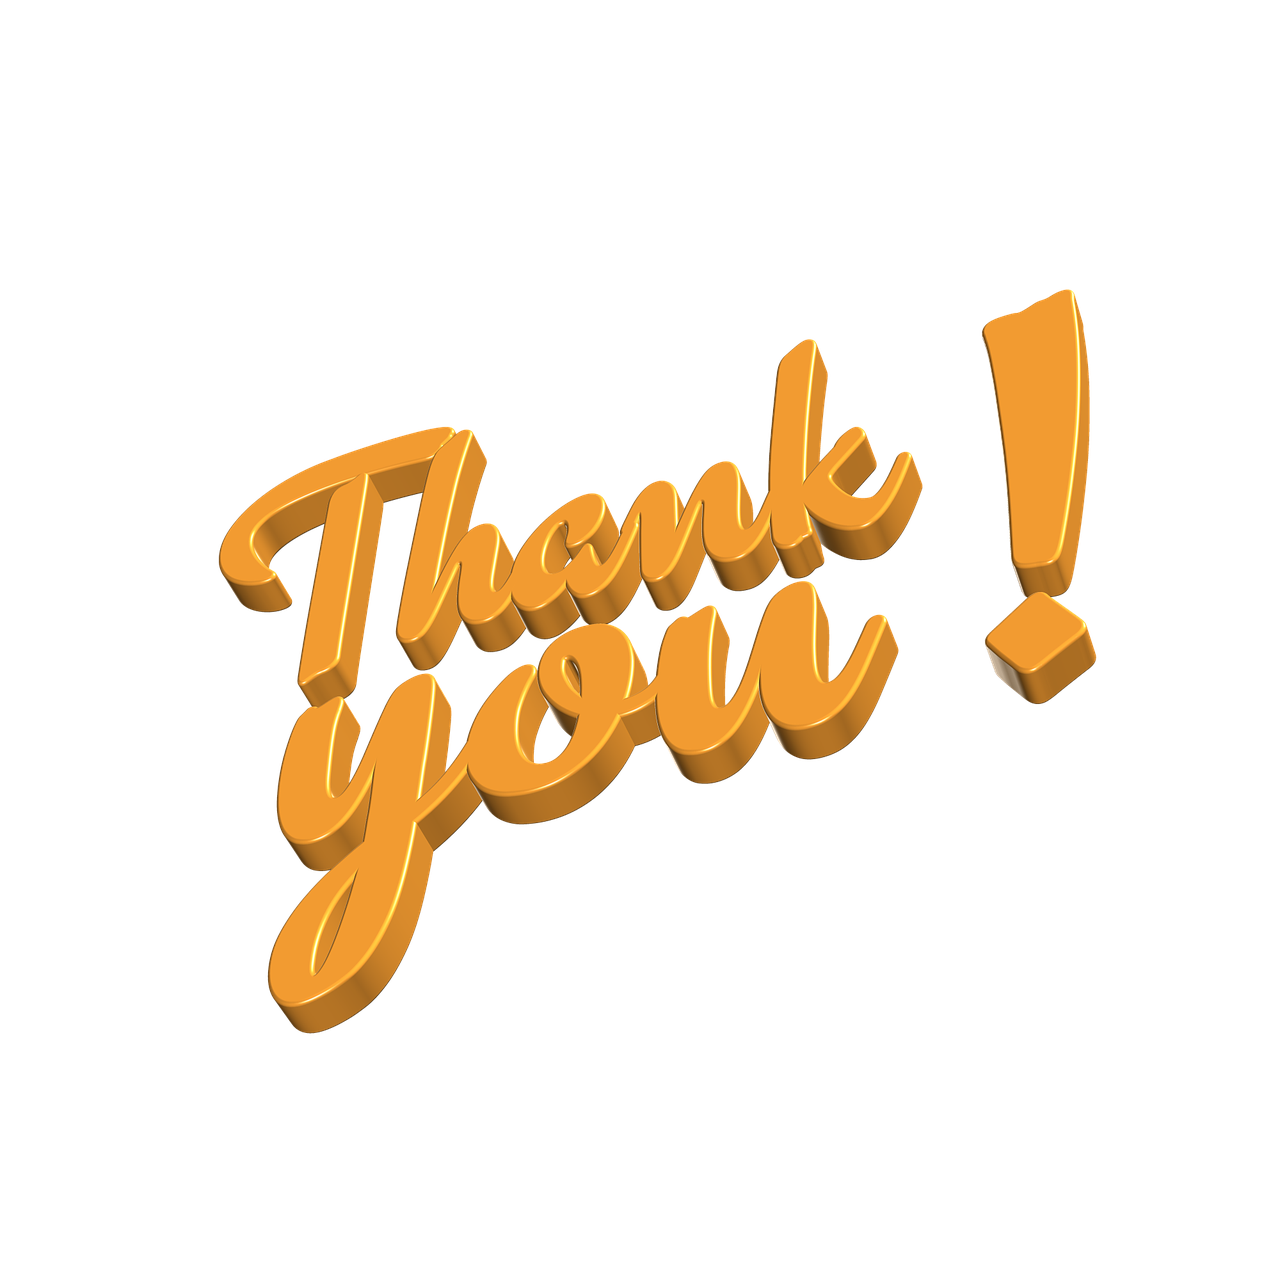 Free Image On Pixabay - Thank You, Letters